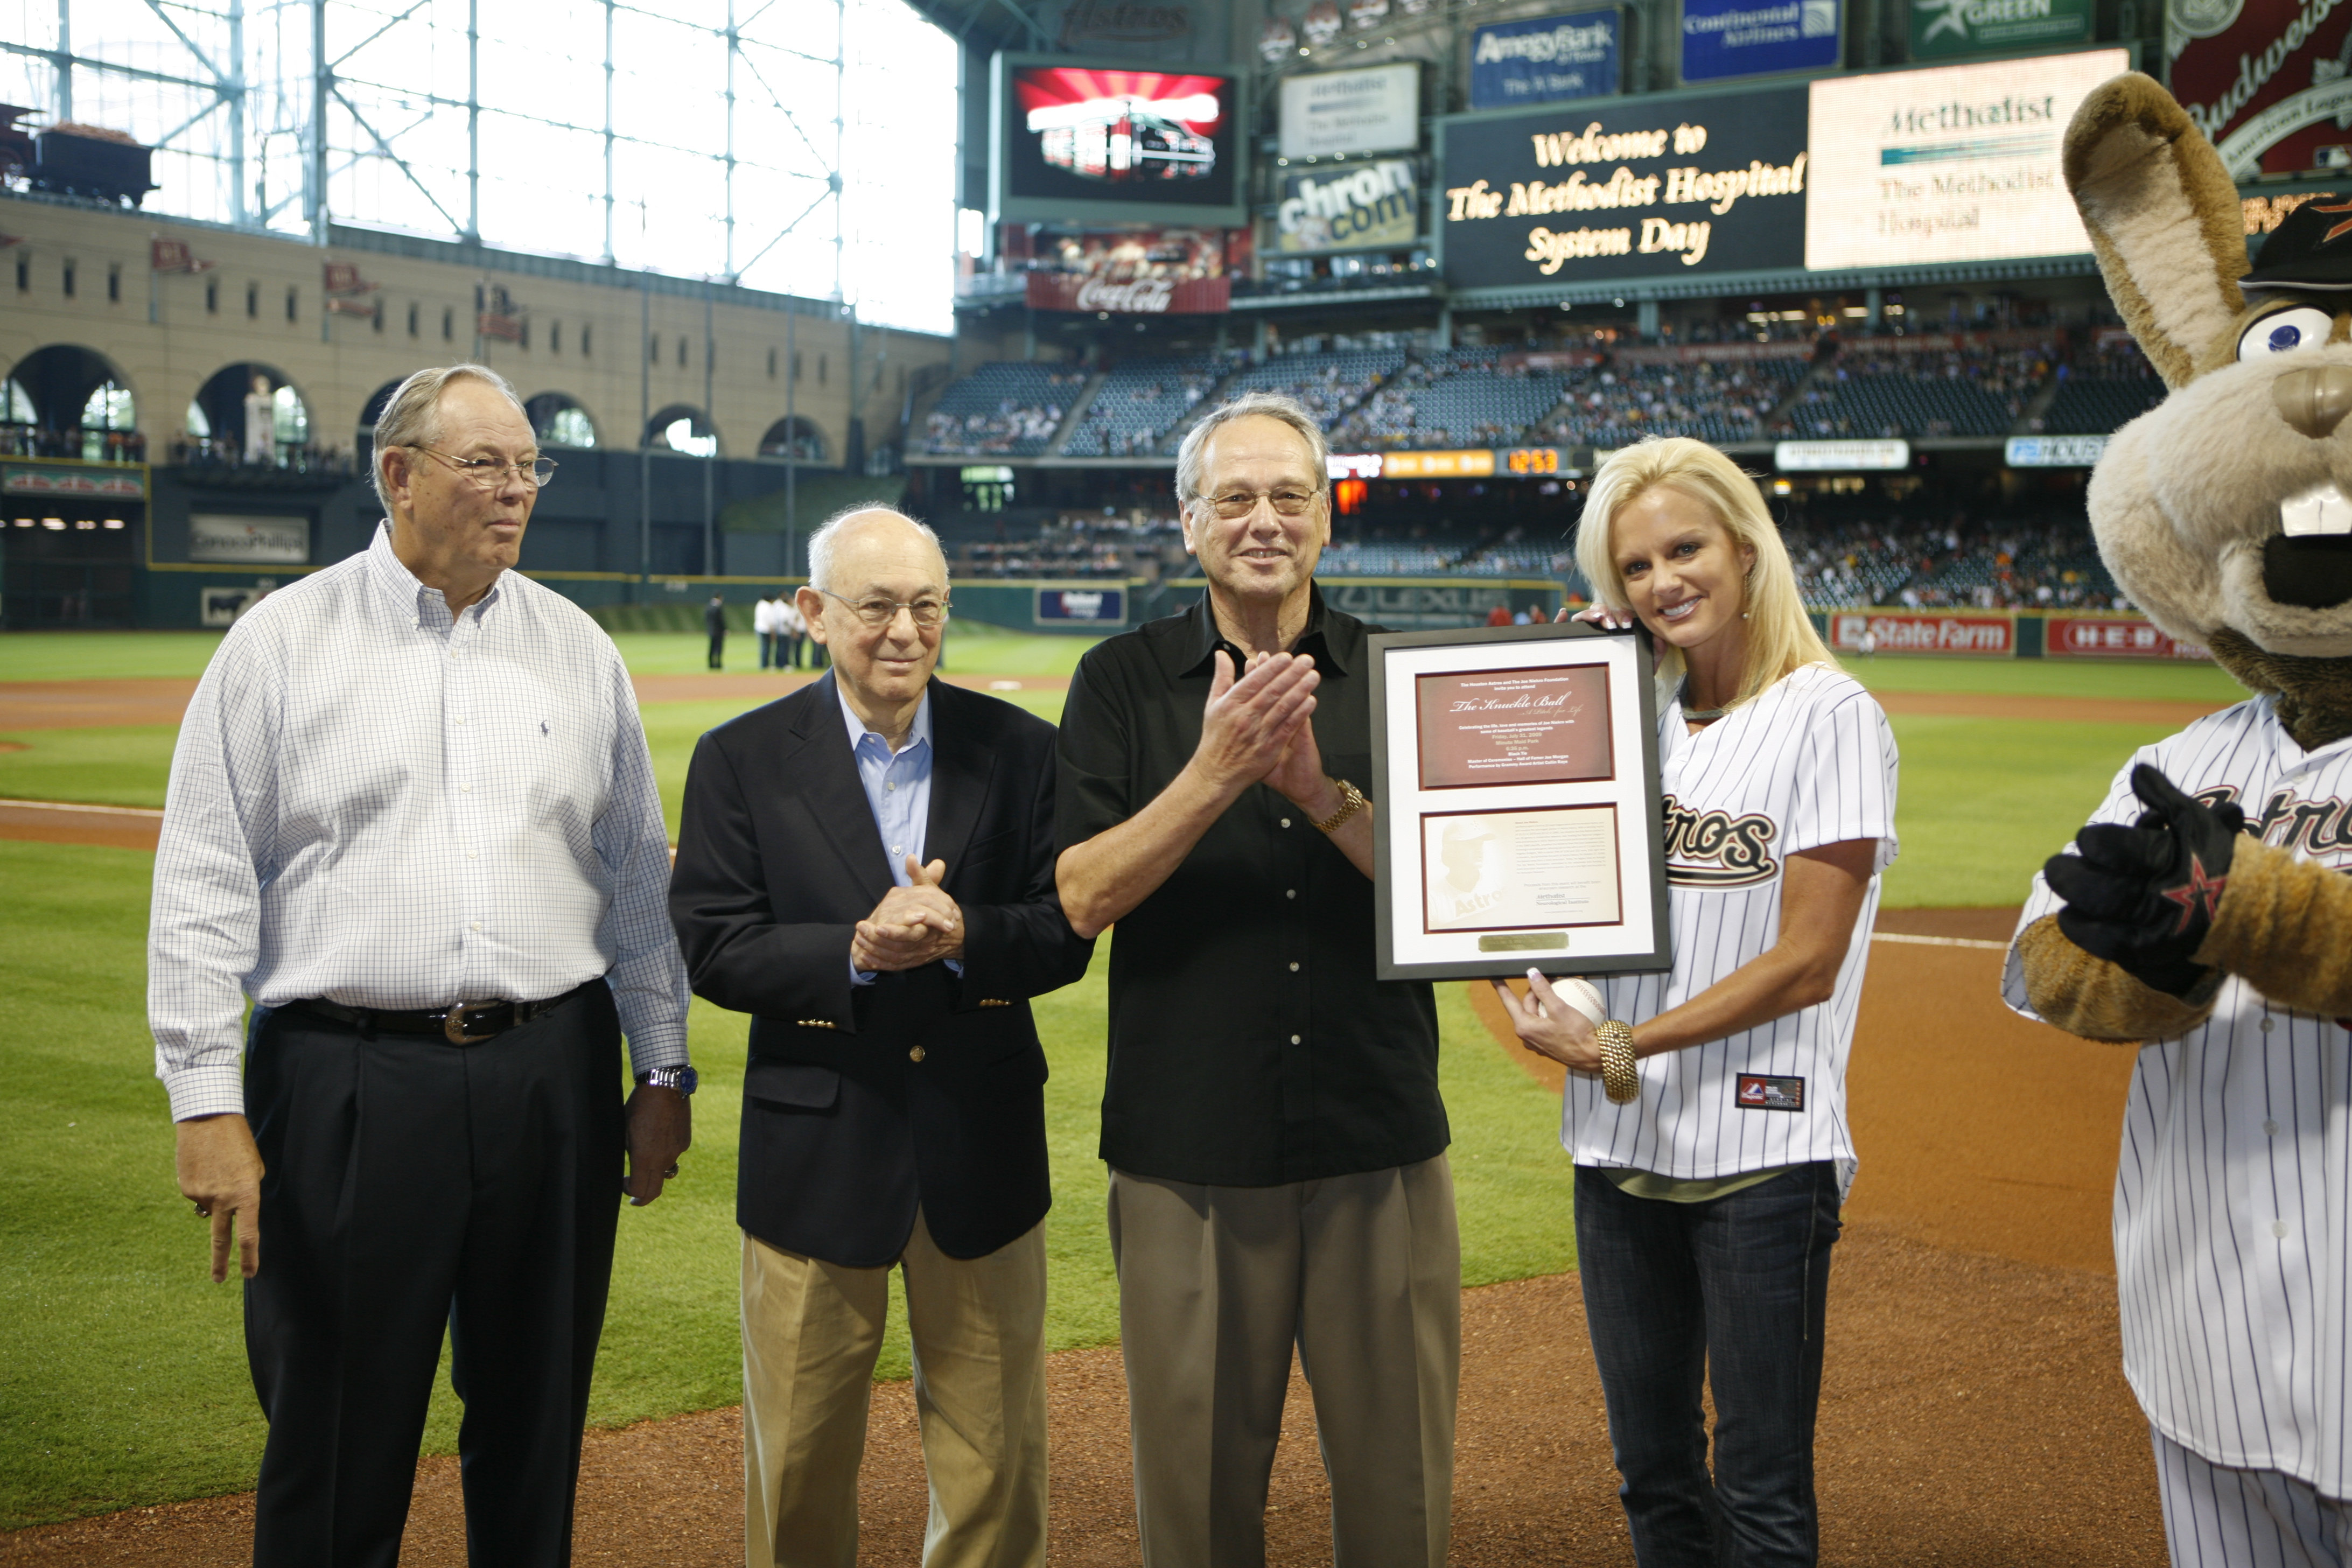 https://www.joeniekrofoundation.com/aneurysms/a-tribute-to-the-niekro-name-and-the-knuckleball/attachment/091309-14-astros-pirates-pregame-ceremonies/